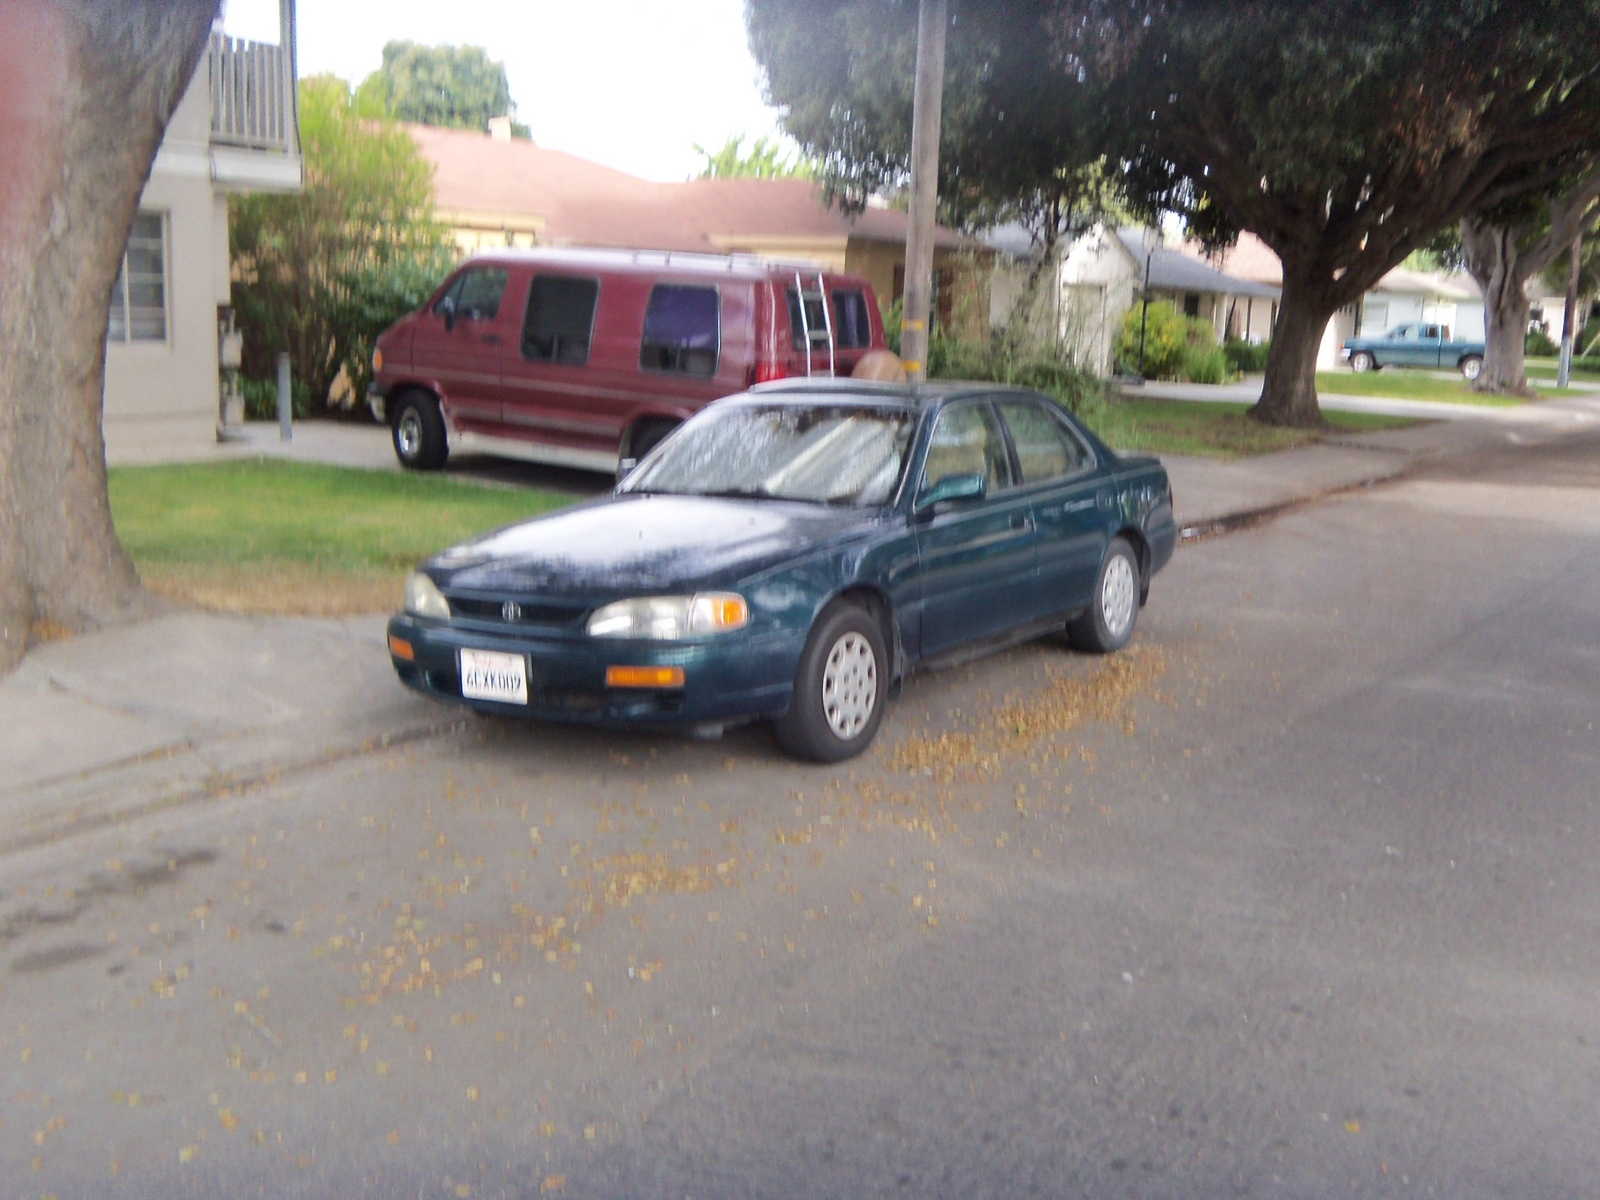 1996 Toyota Camry LE, Picture of 1996 Toyota Camry 4 Dr LE Sedan, exterior